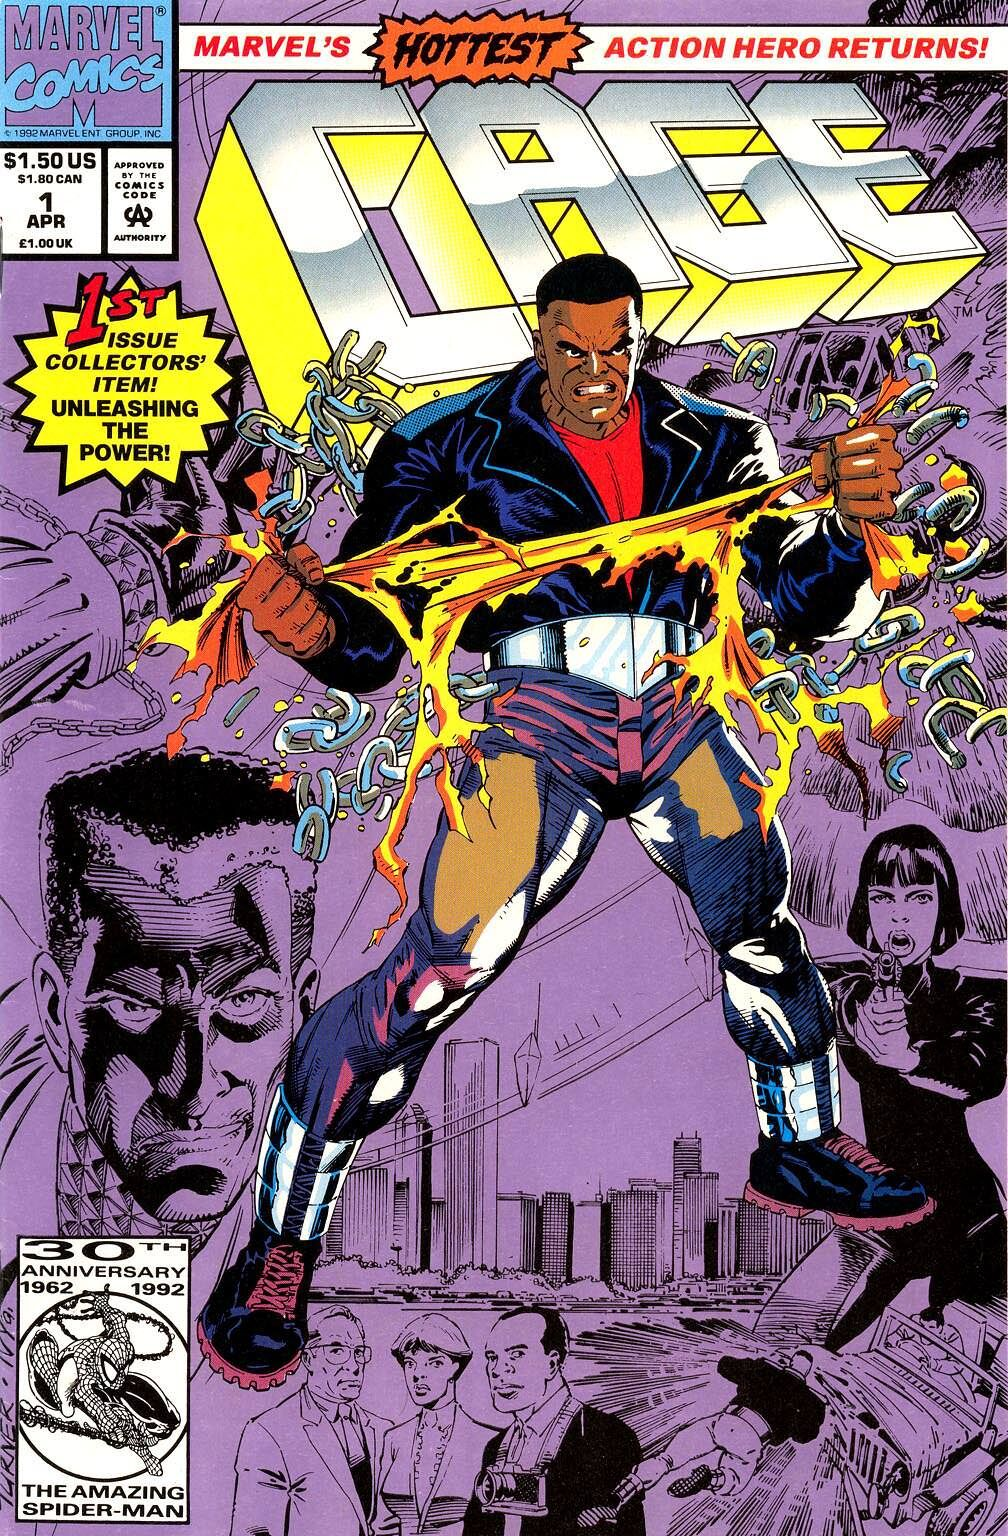 New and improved updated Luke Cage for the 90s with 90s haircut and leather jacket